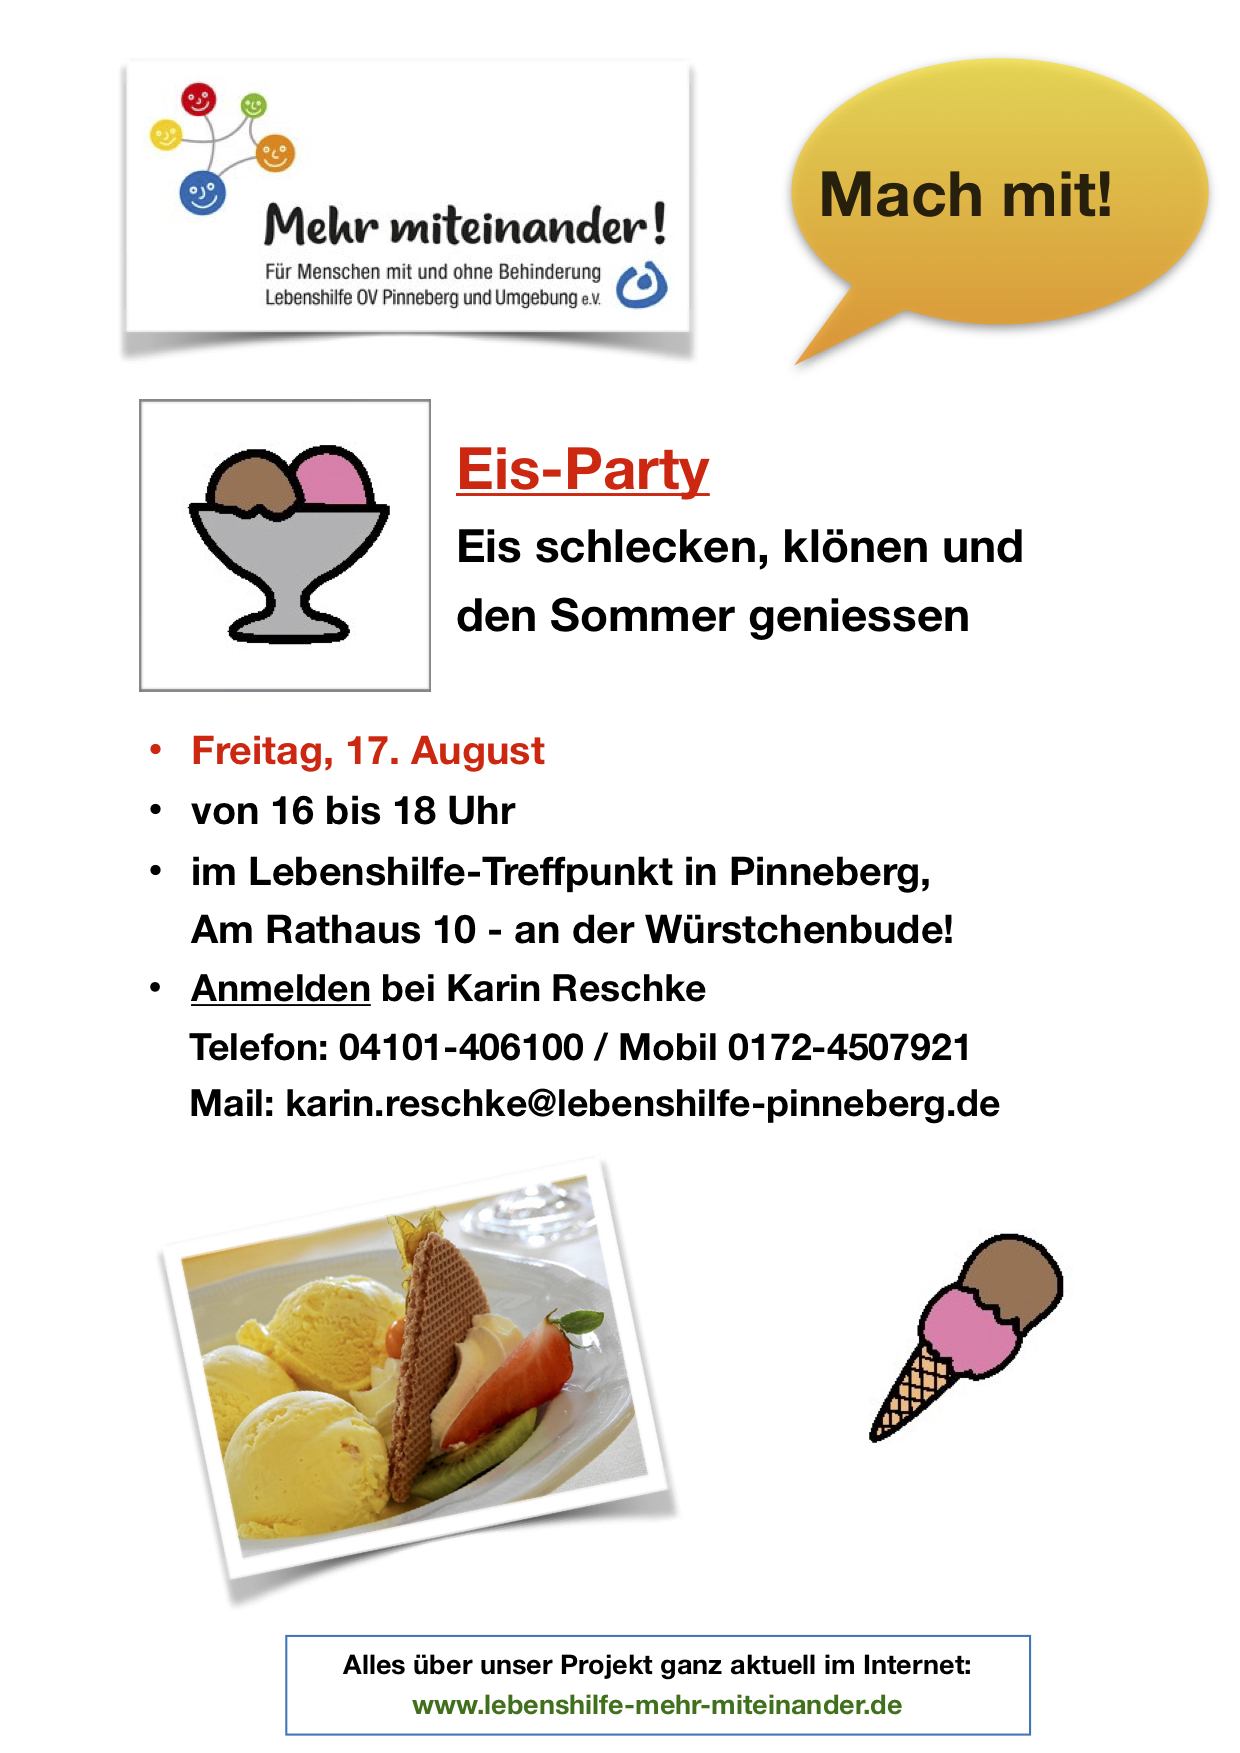 Eis Party, 17.8.2018